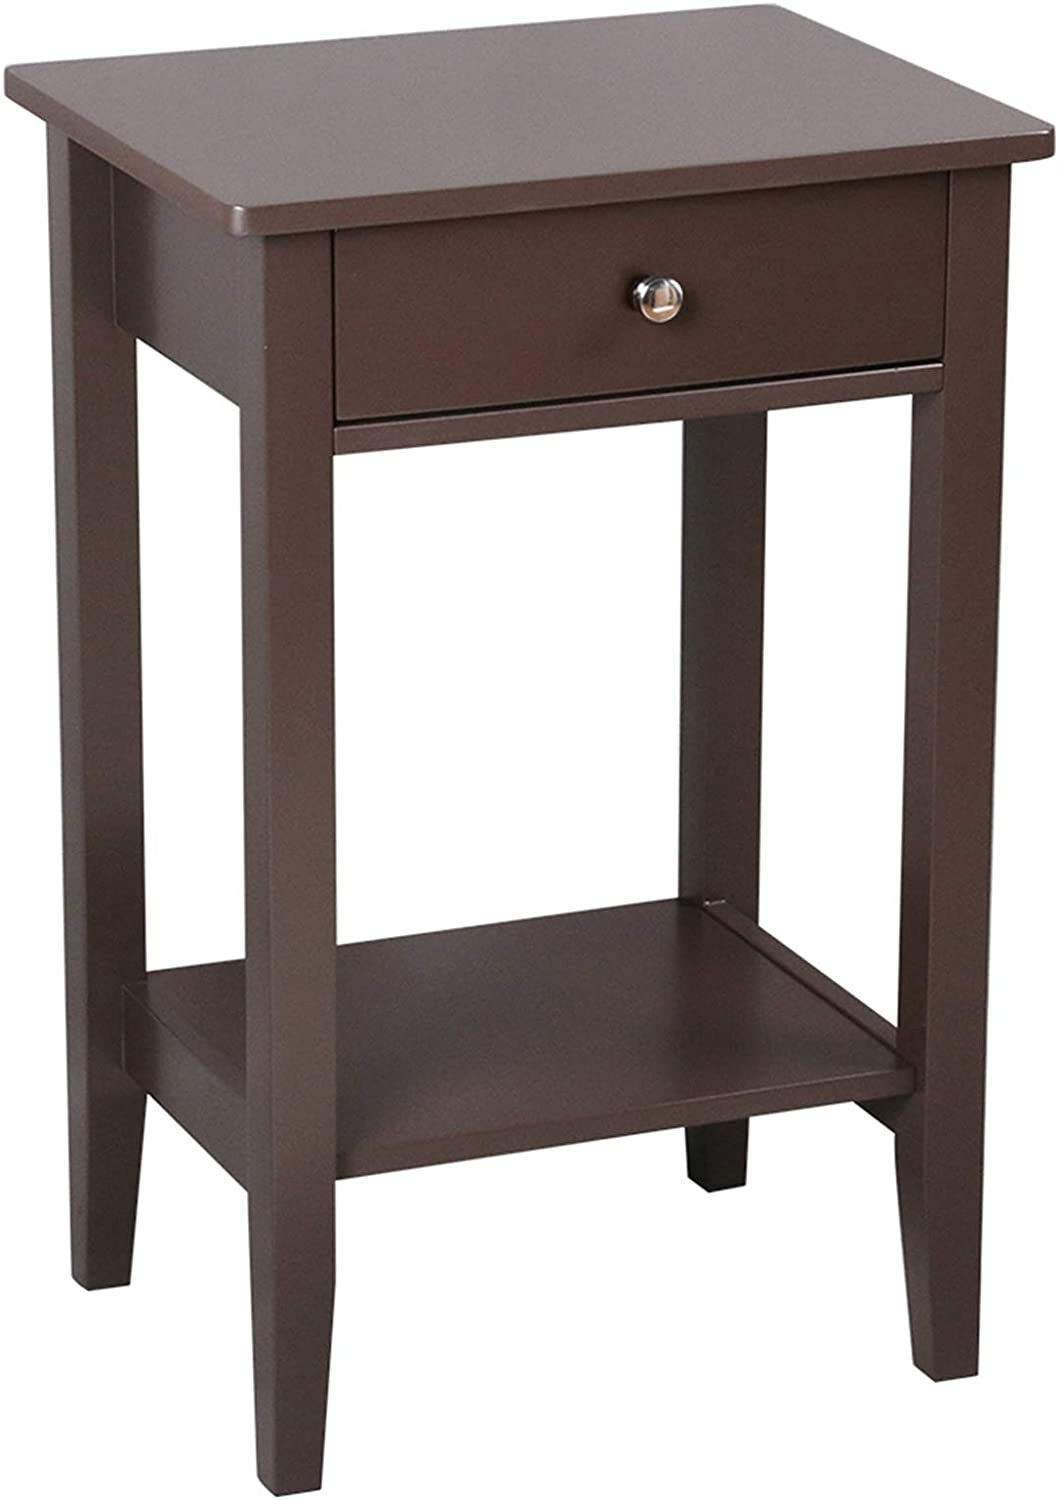 Savins Lowest Sales price challenge gt1-ZJ Two-Layer Bedside Table C Drawer Coffee with